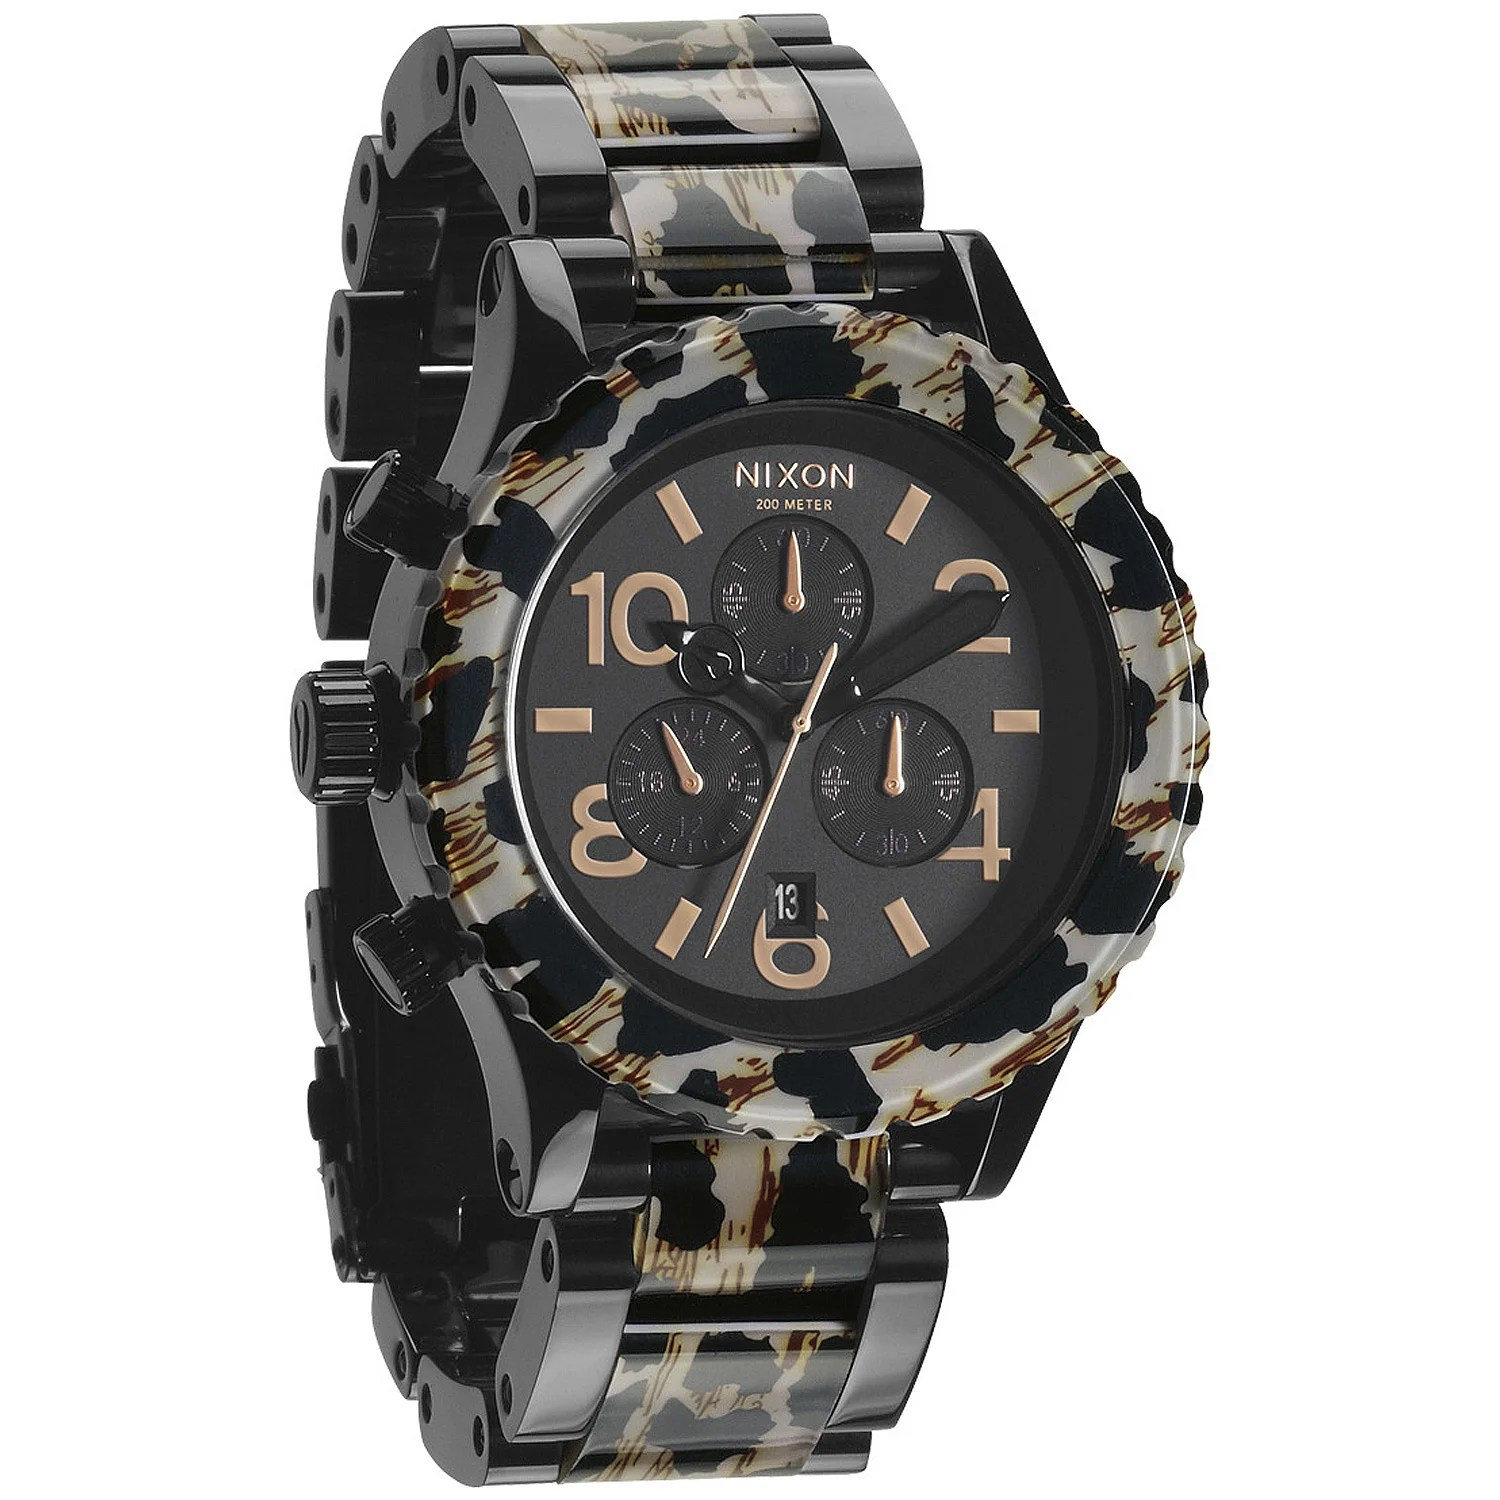 Nixon Watches Divers Nixon Watches Shop Our Best Jewelry Watches Deals